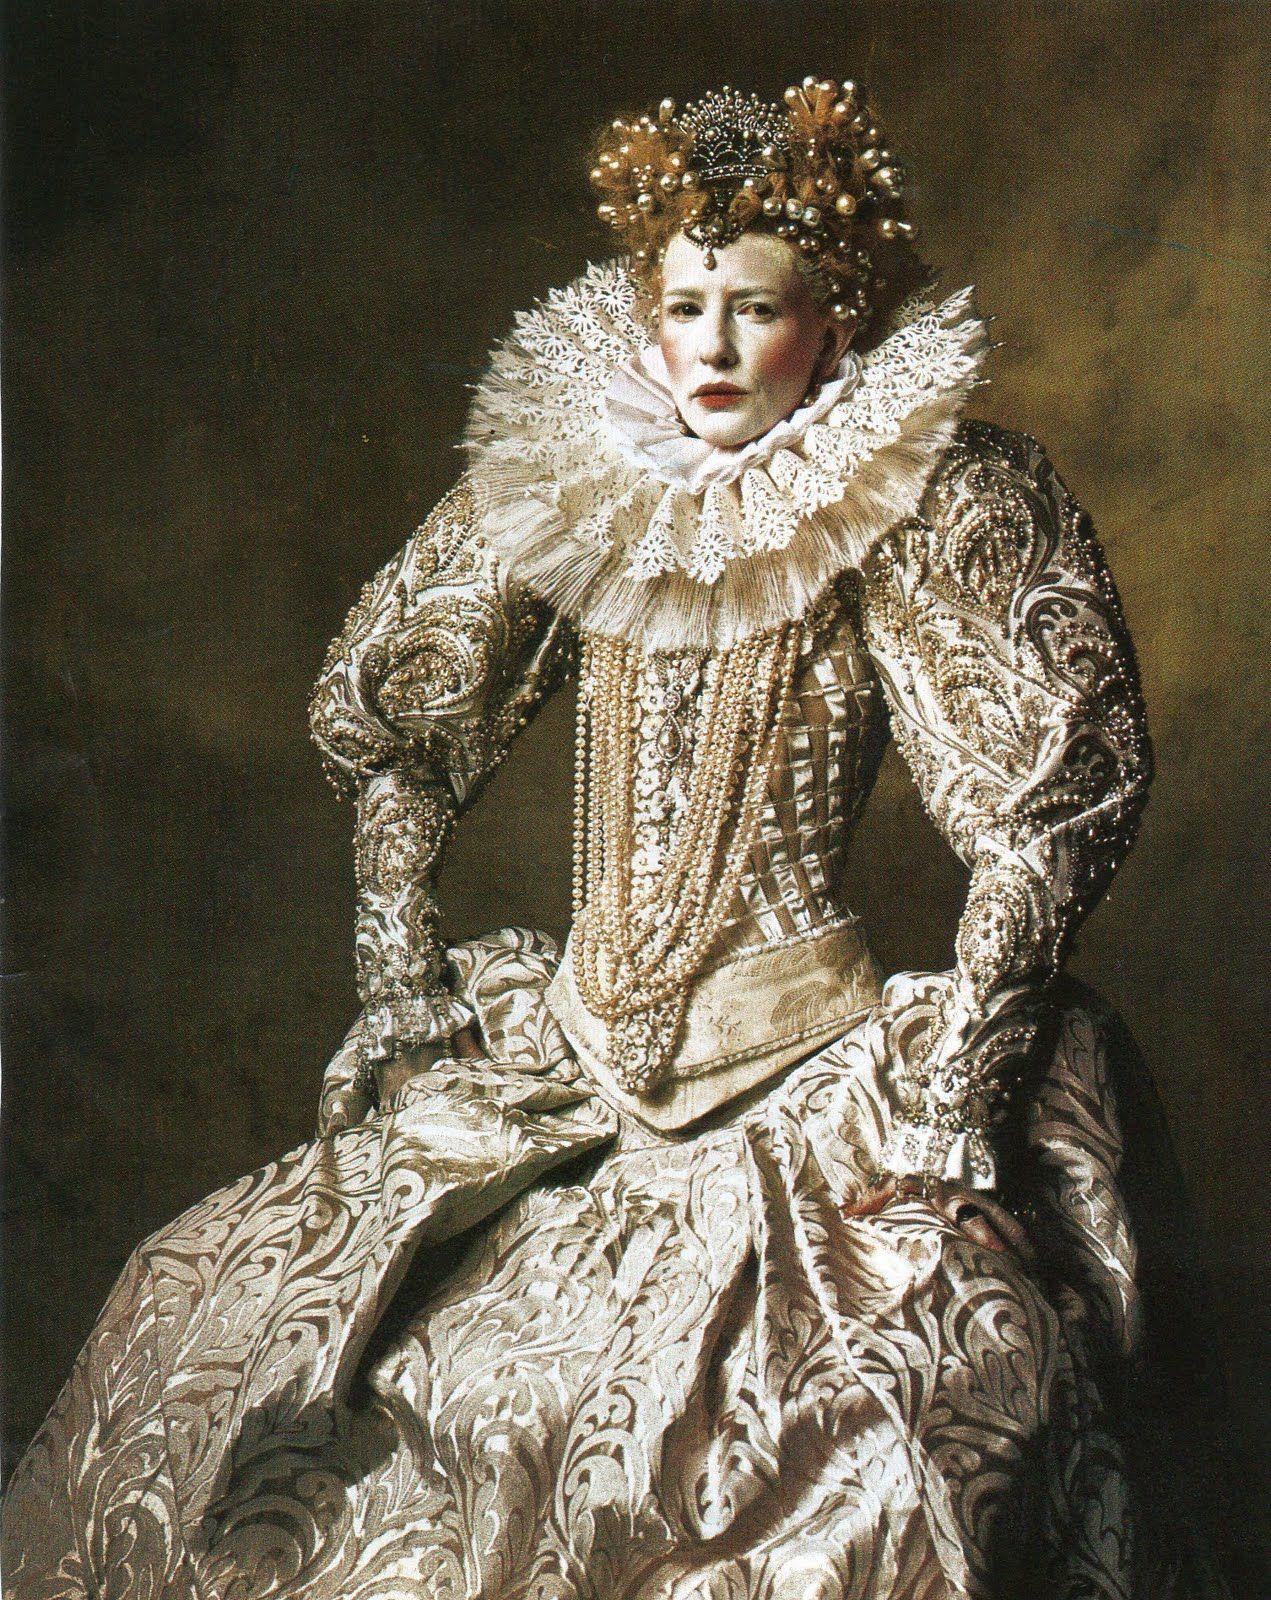 Cate Blanchett as Queen Elizabeth Elizabethan fashion